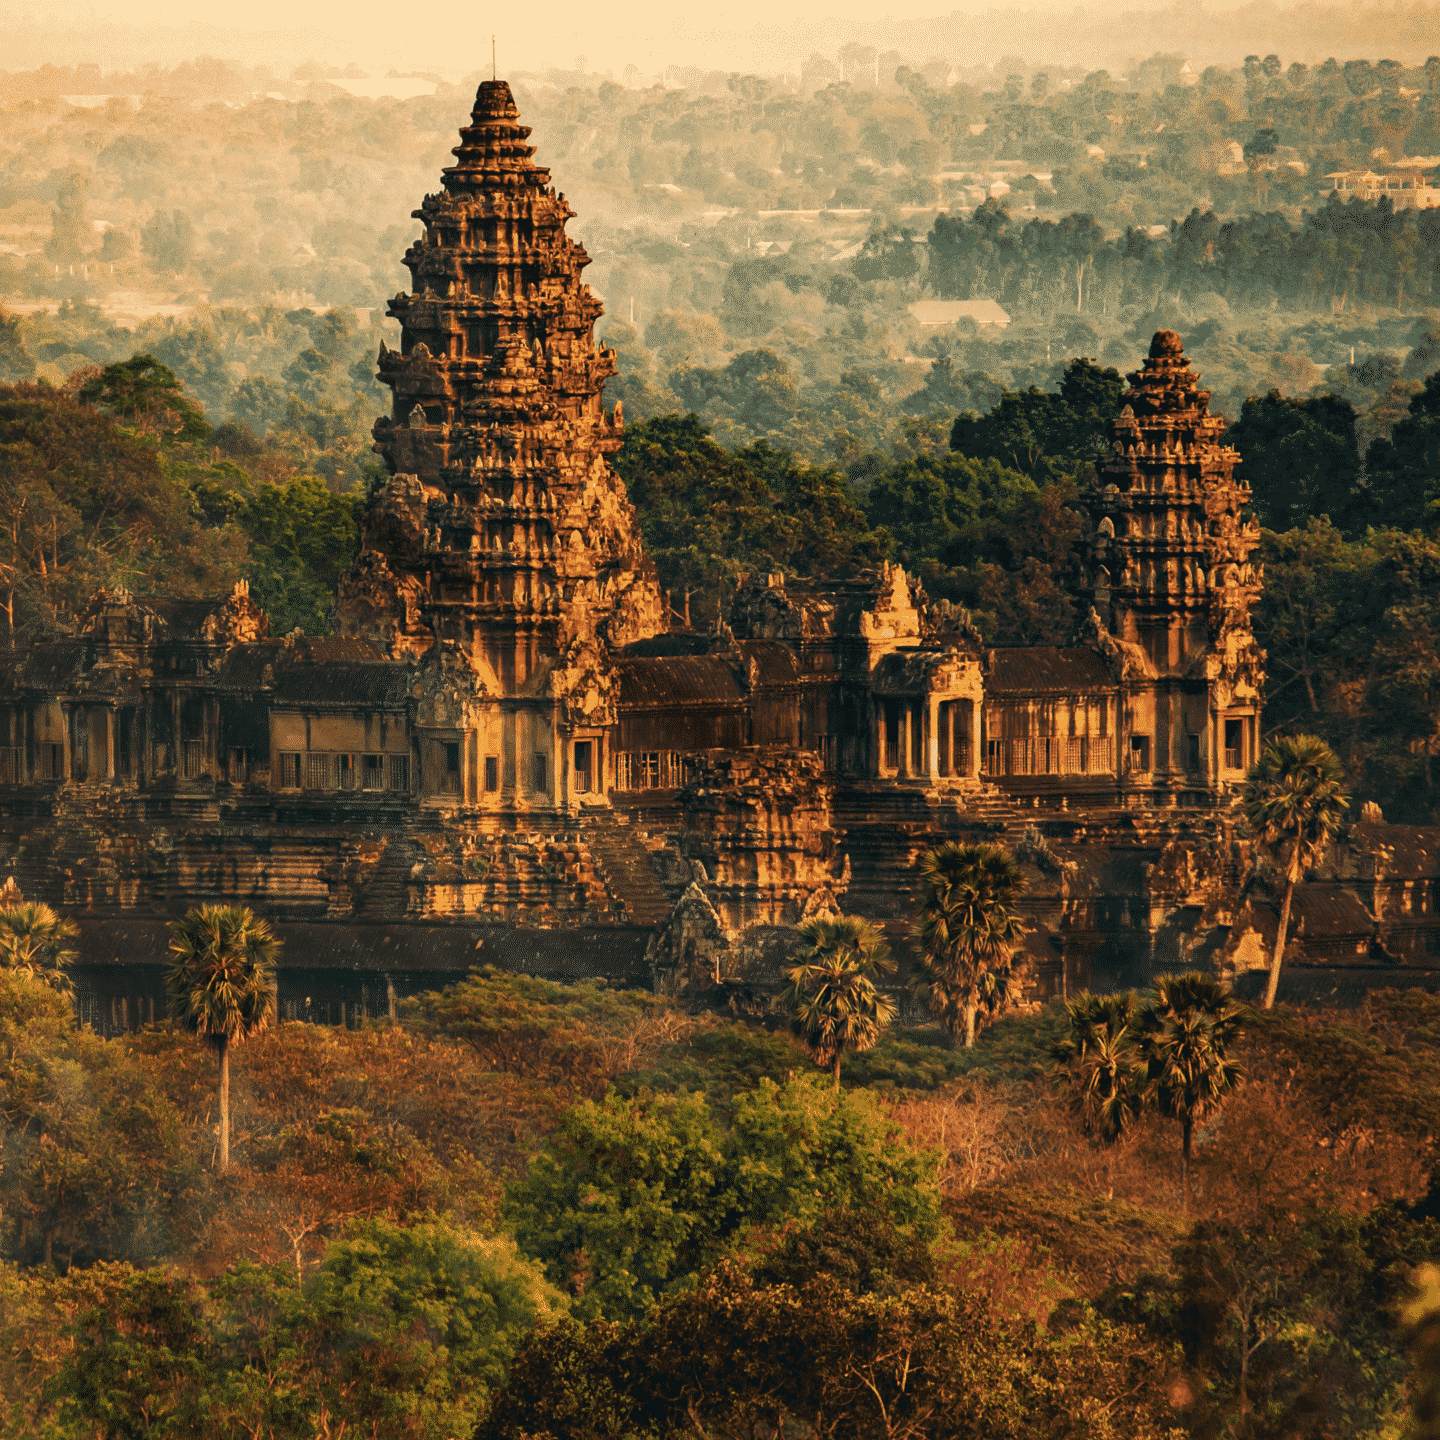 25 places to visit before turning 25 | Cambodia